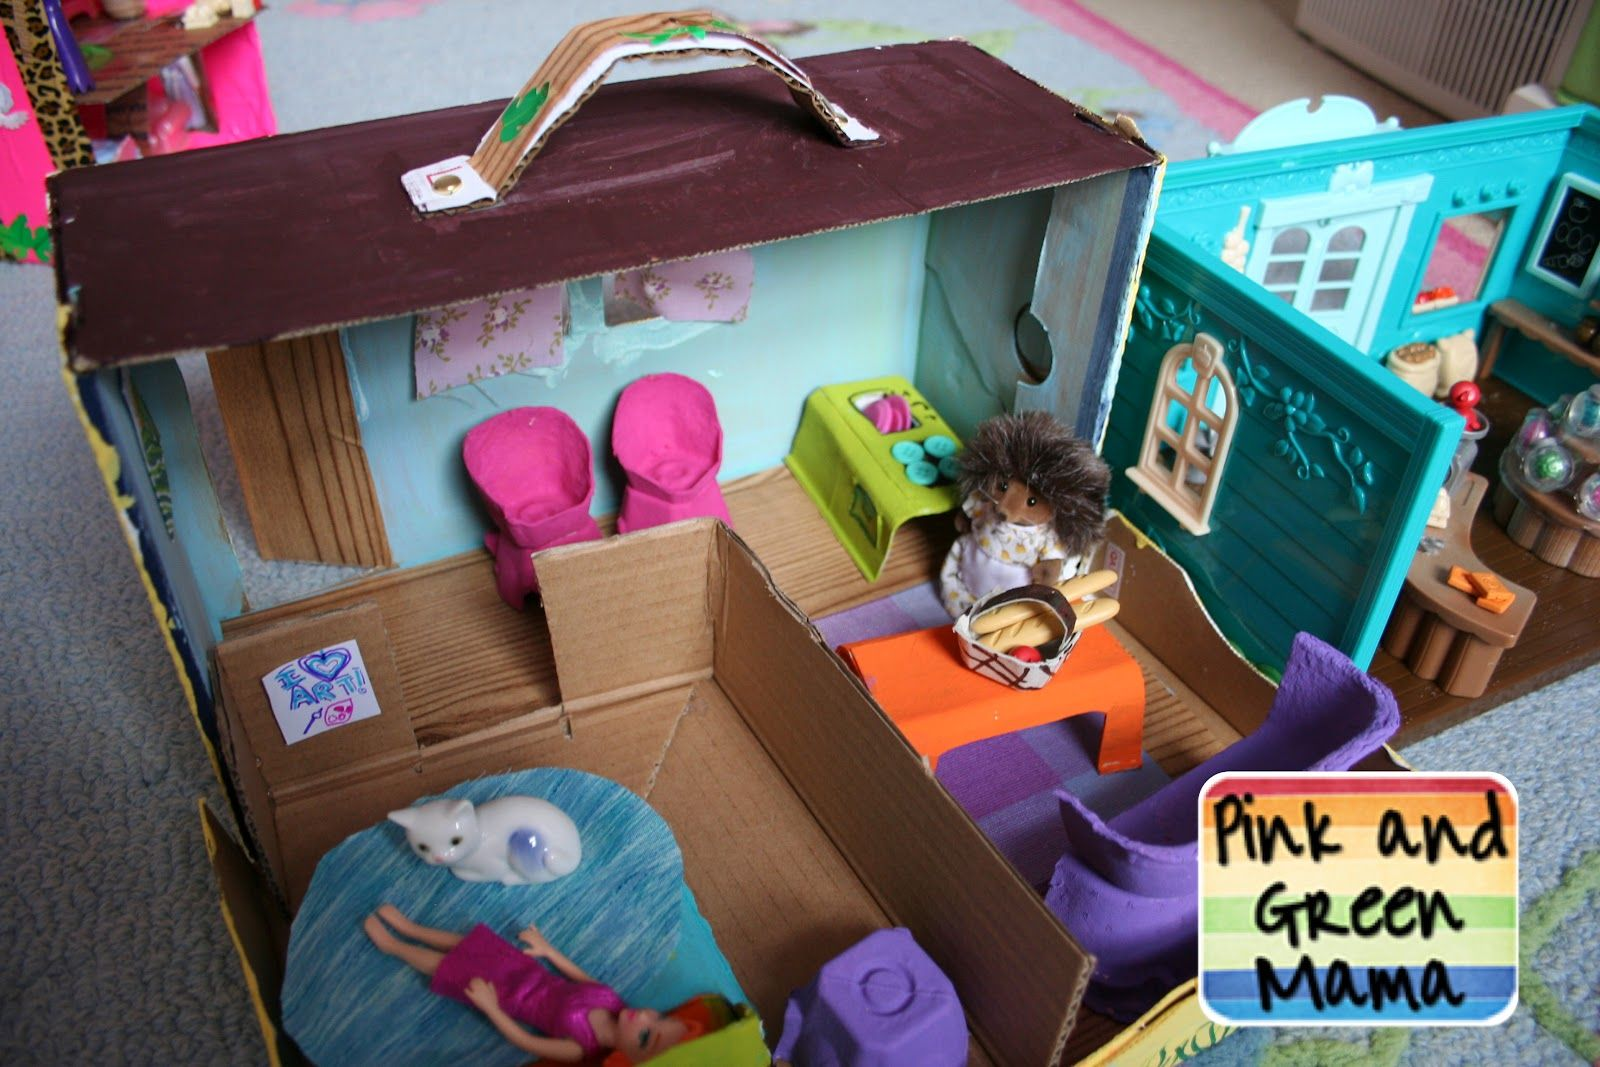 Shoebox Bedroom Pink And Green Mama Cardboard Shoe Box Play House With Egg Carton